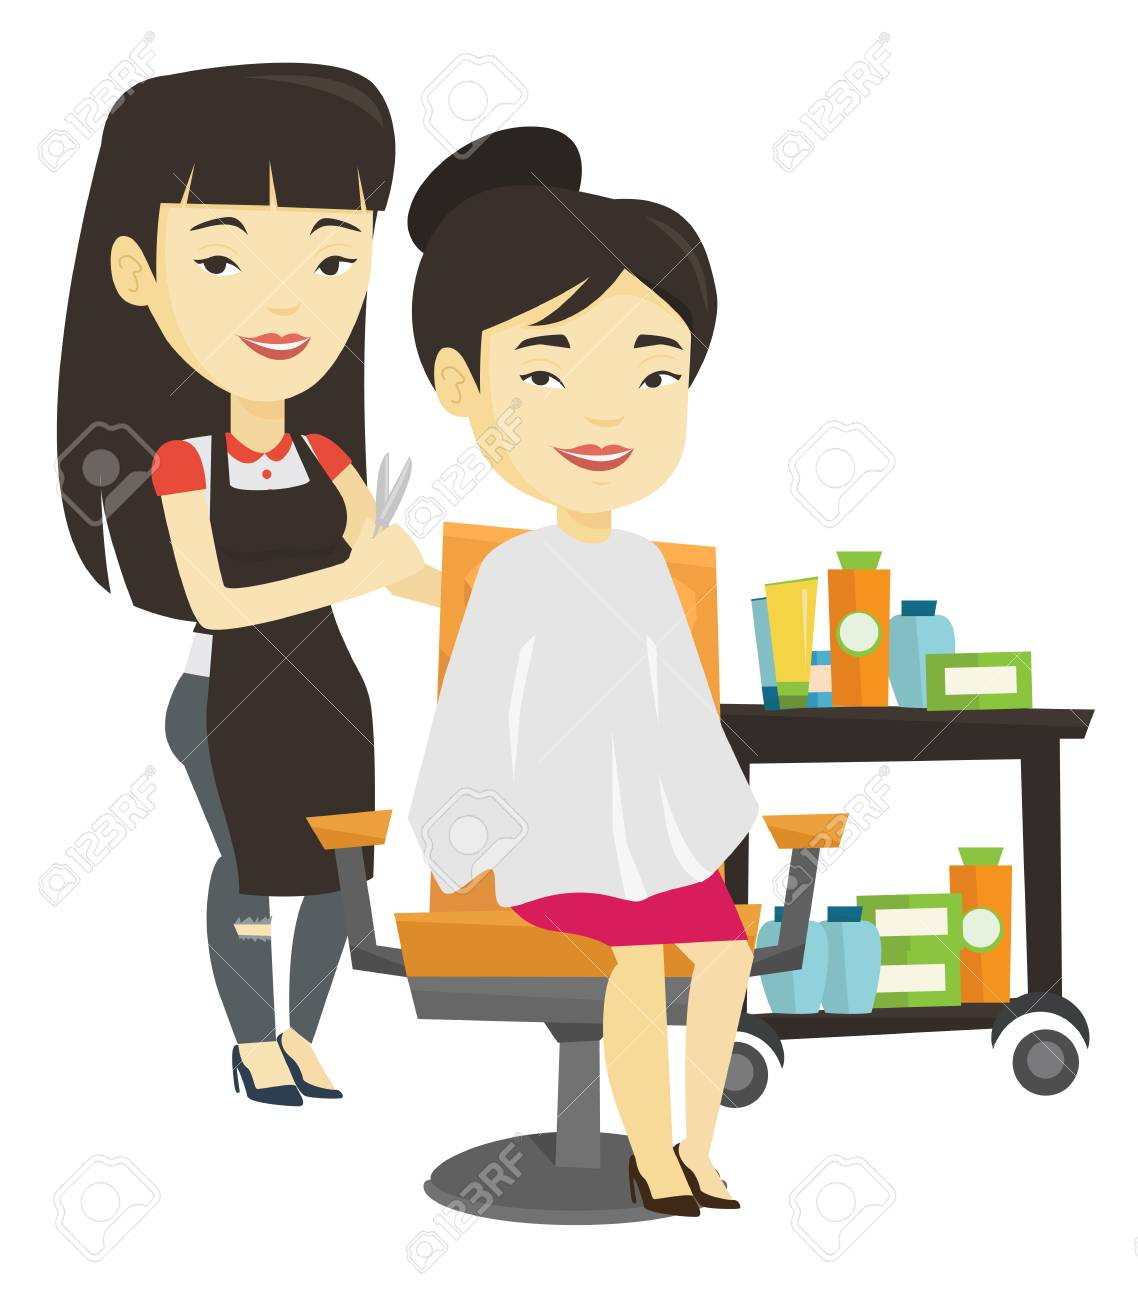 Asian Hairdresser Cutting Hair Of A Young Woman In Beauty Salon Royalty Free Cliparts Vectors And Stock Illustration Image 76252910